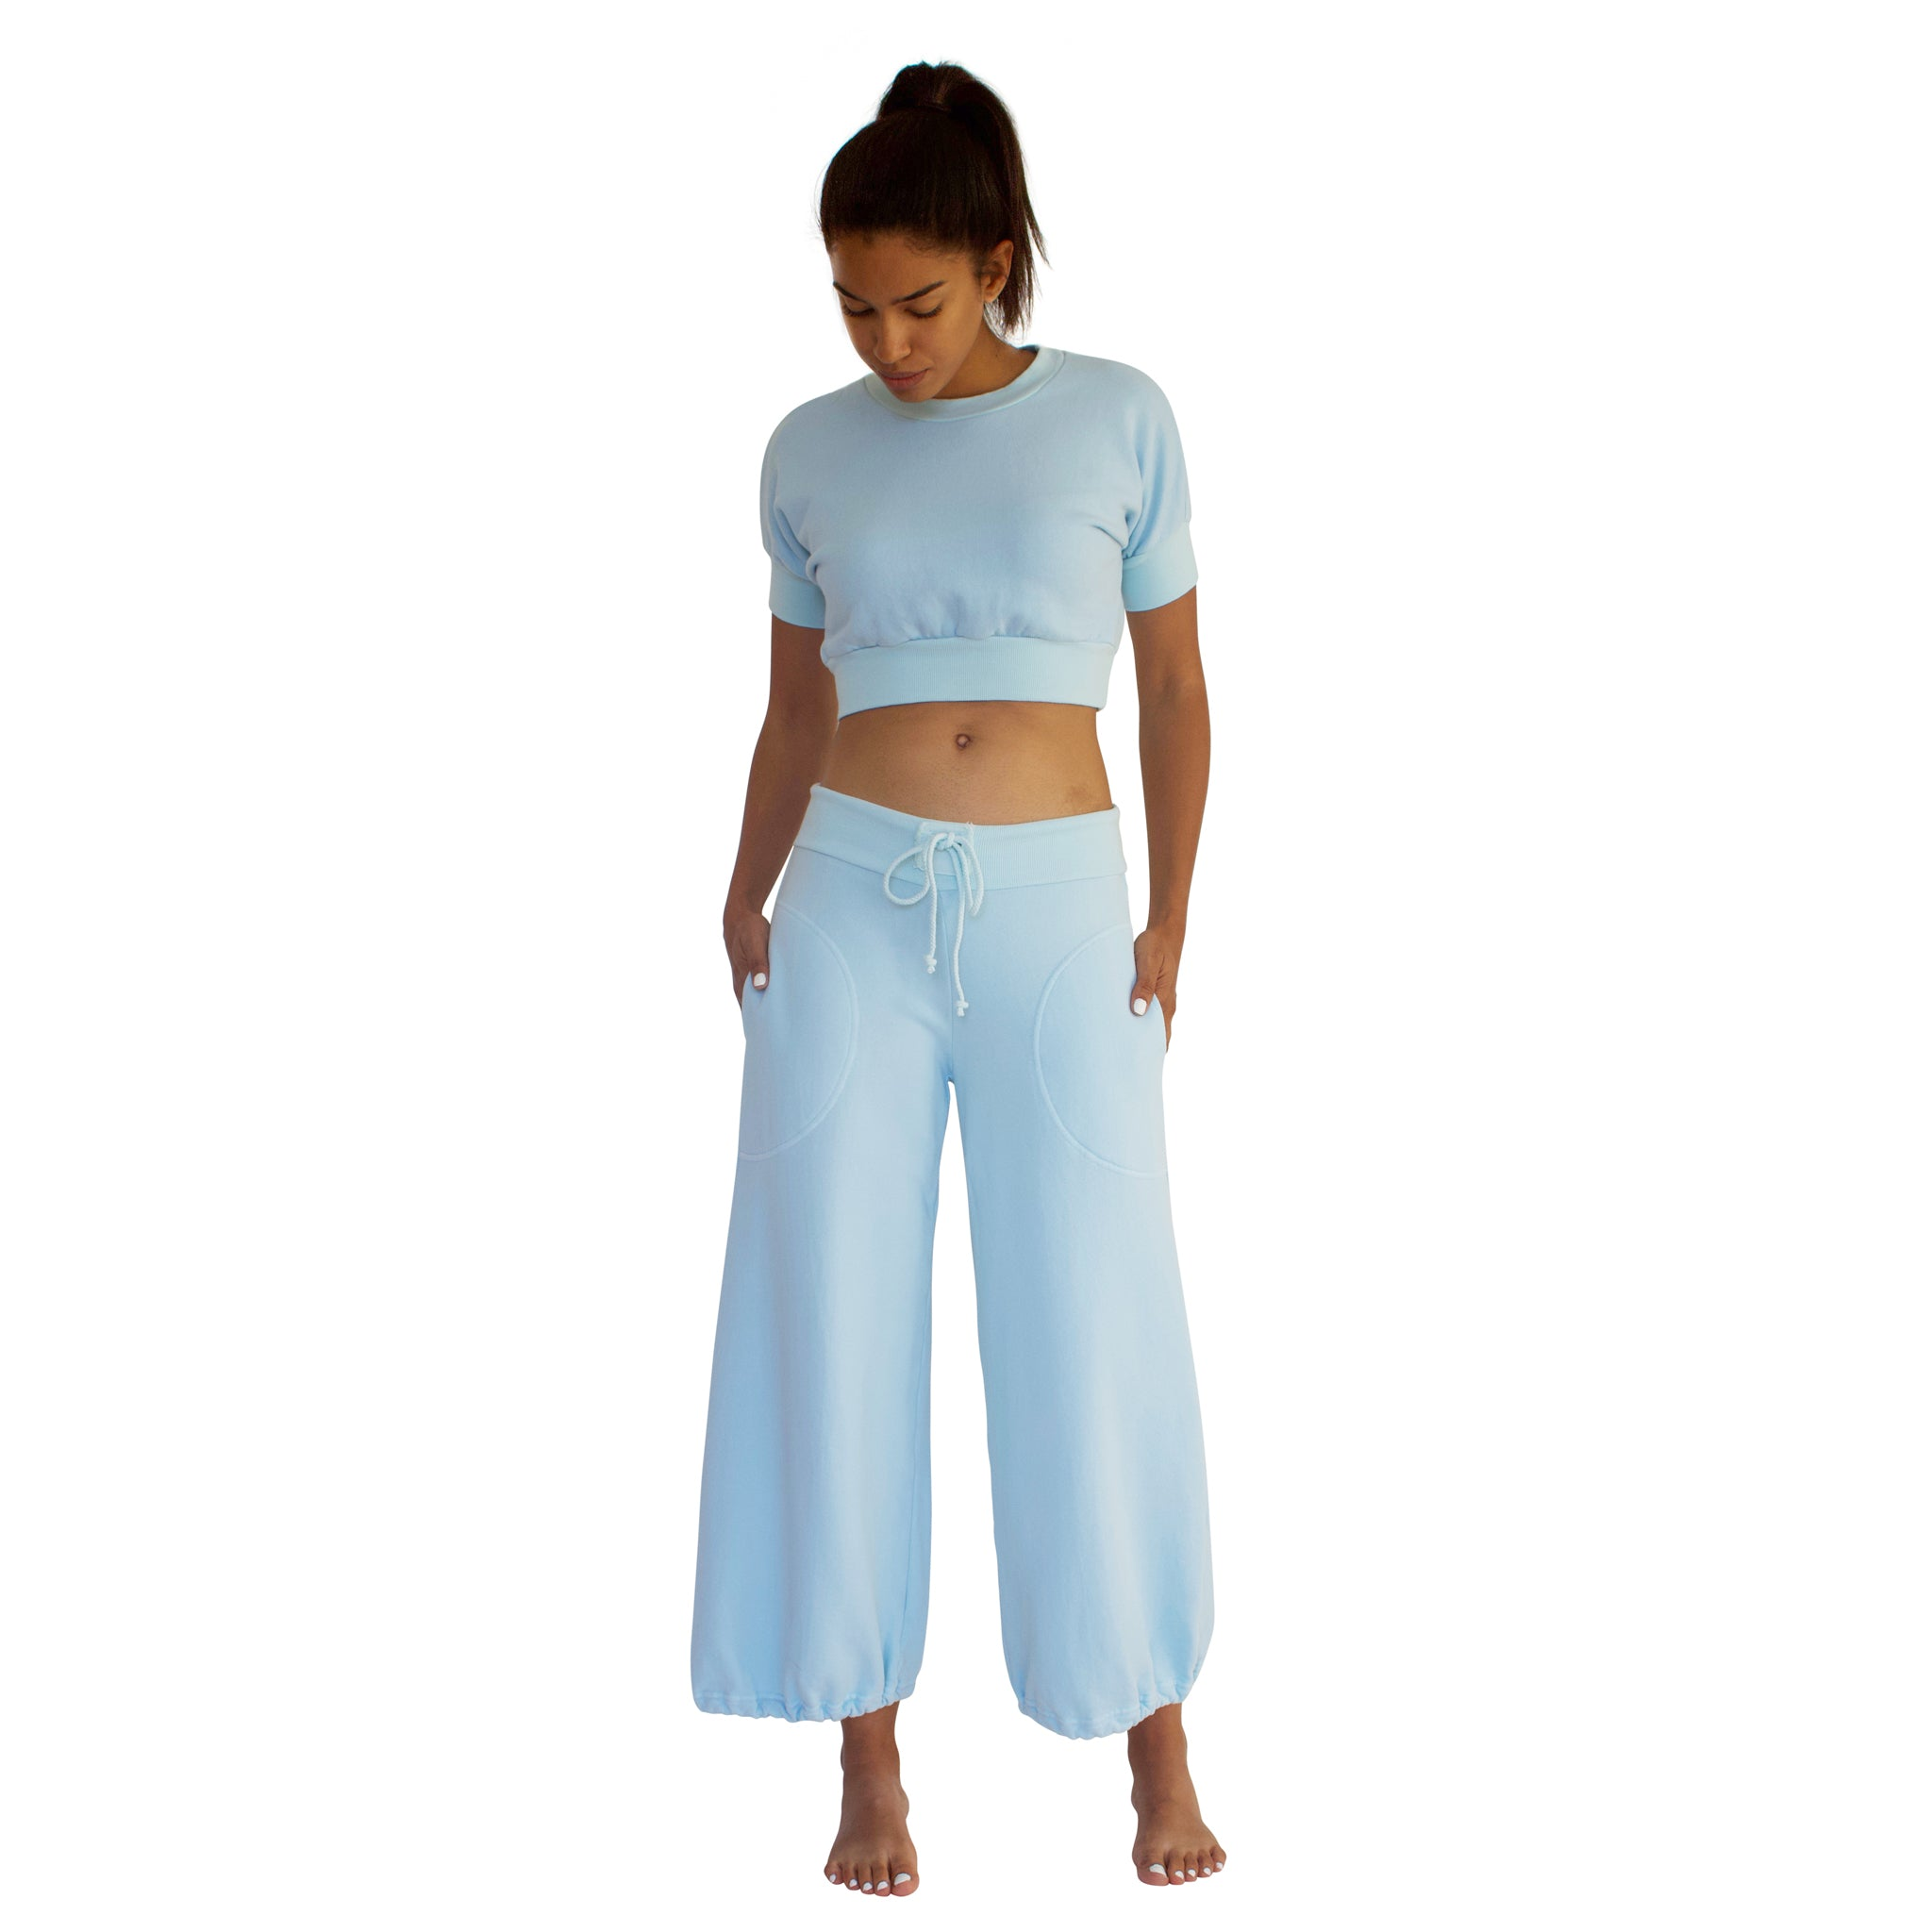 CC Beach Pant in 100% cotton French Terry will keep you comfy and cozy with roomy side seam pockets, drawstring waist, elasticized cuffs shown here in Sky Blue.